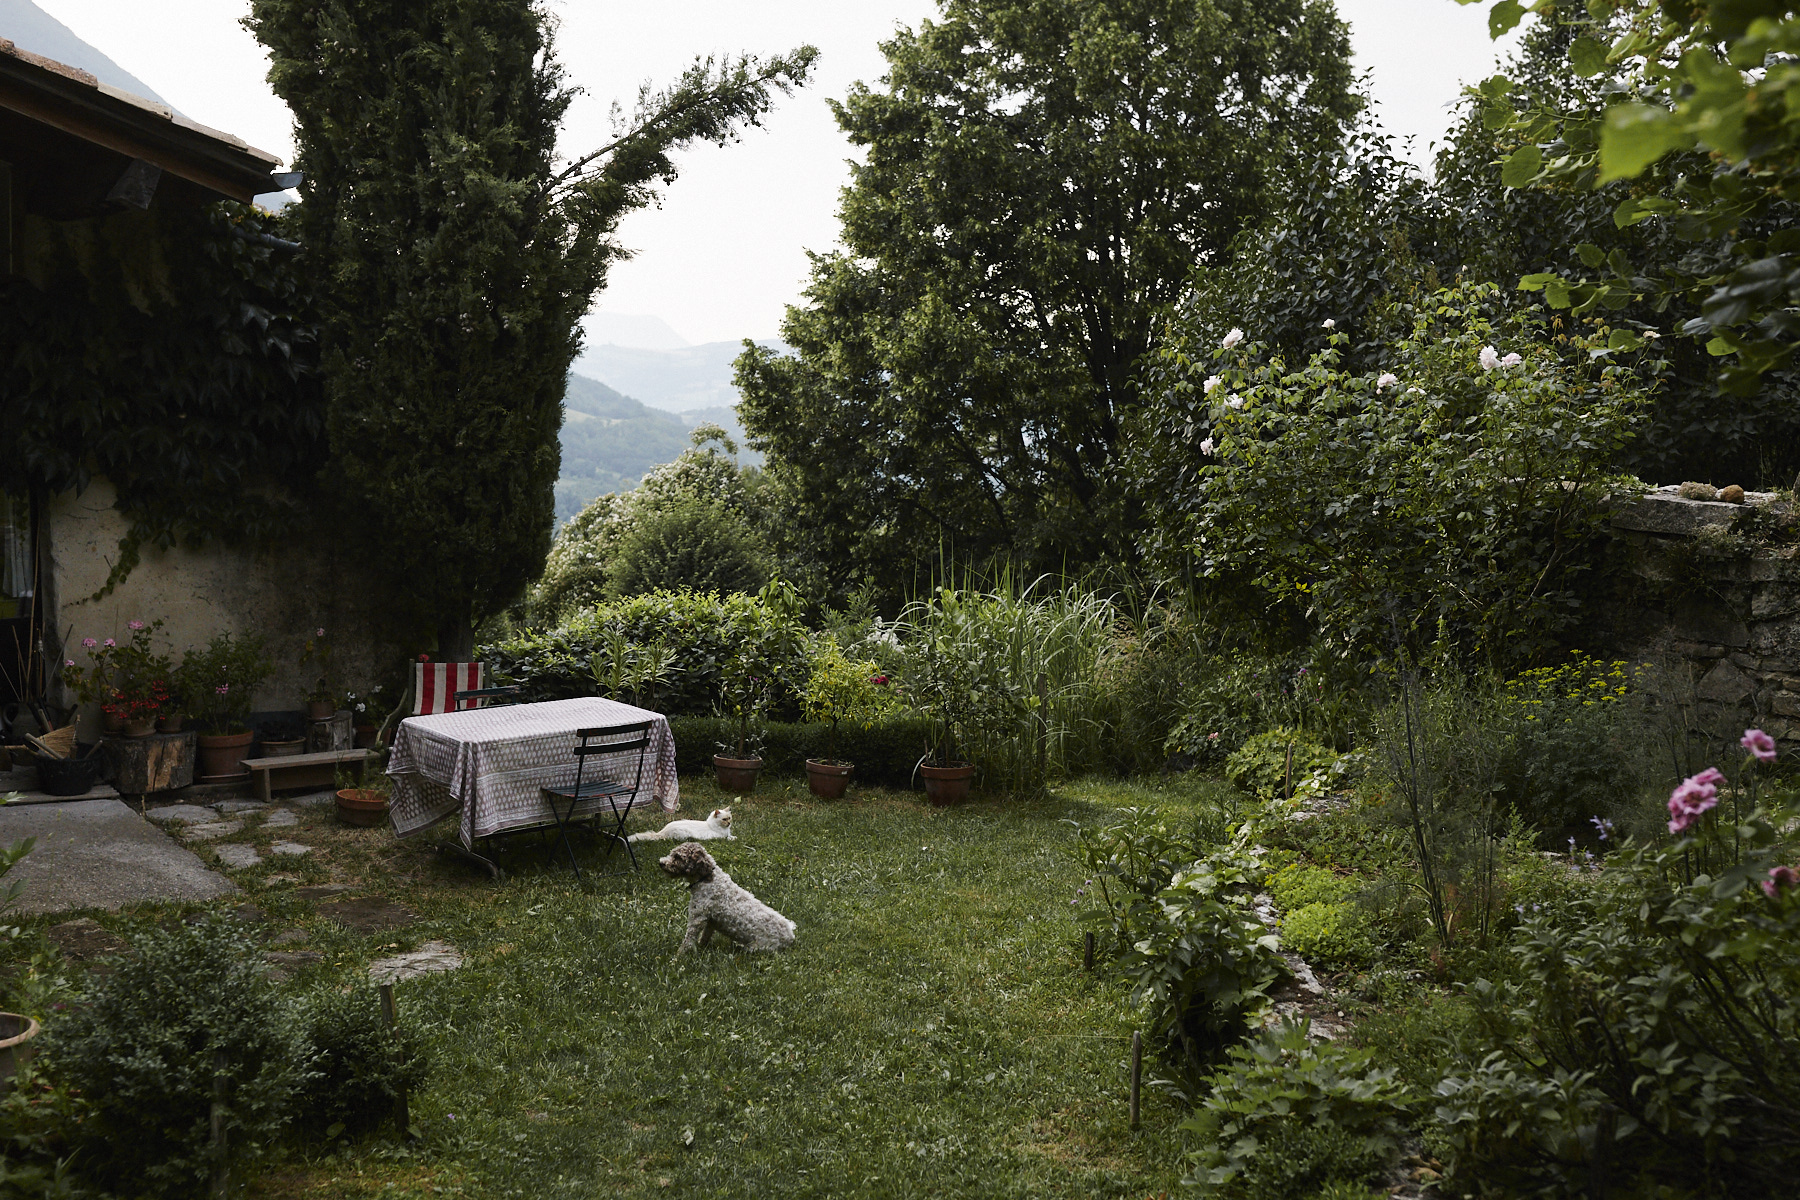 The garden and house in Vesc, Drôme, featuring Lili the cat and Mousse the dog ('Mousse' translates to 'Moss' in English).